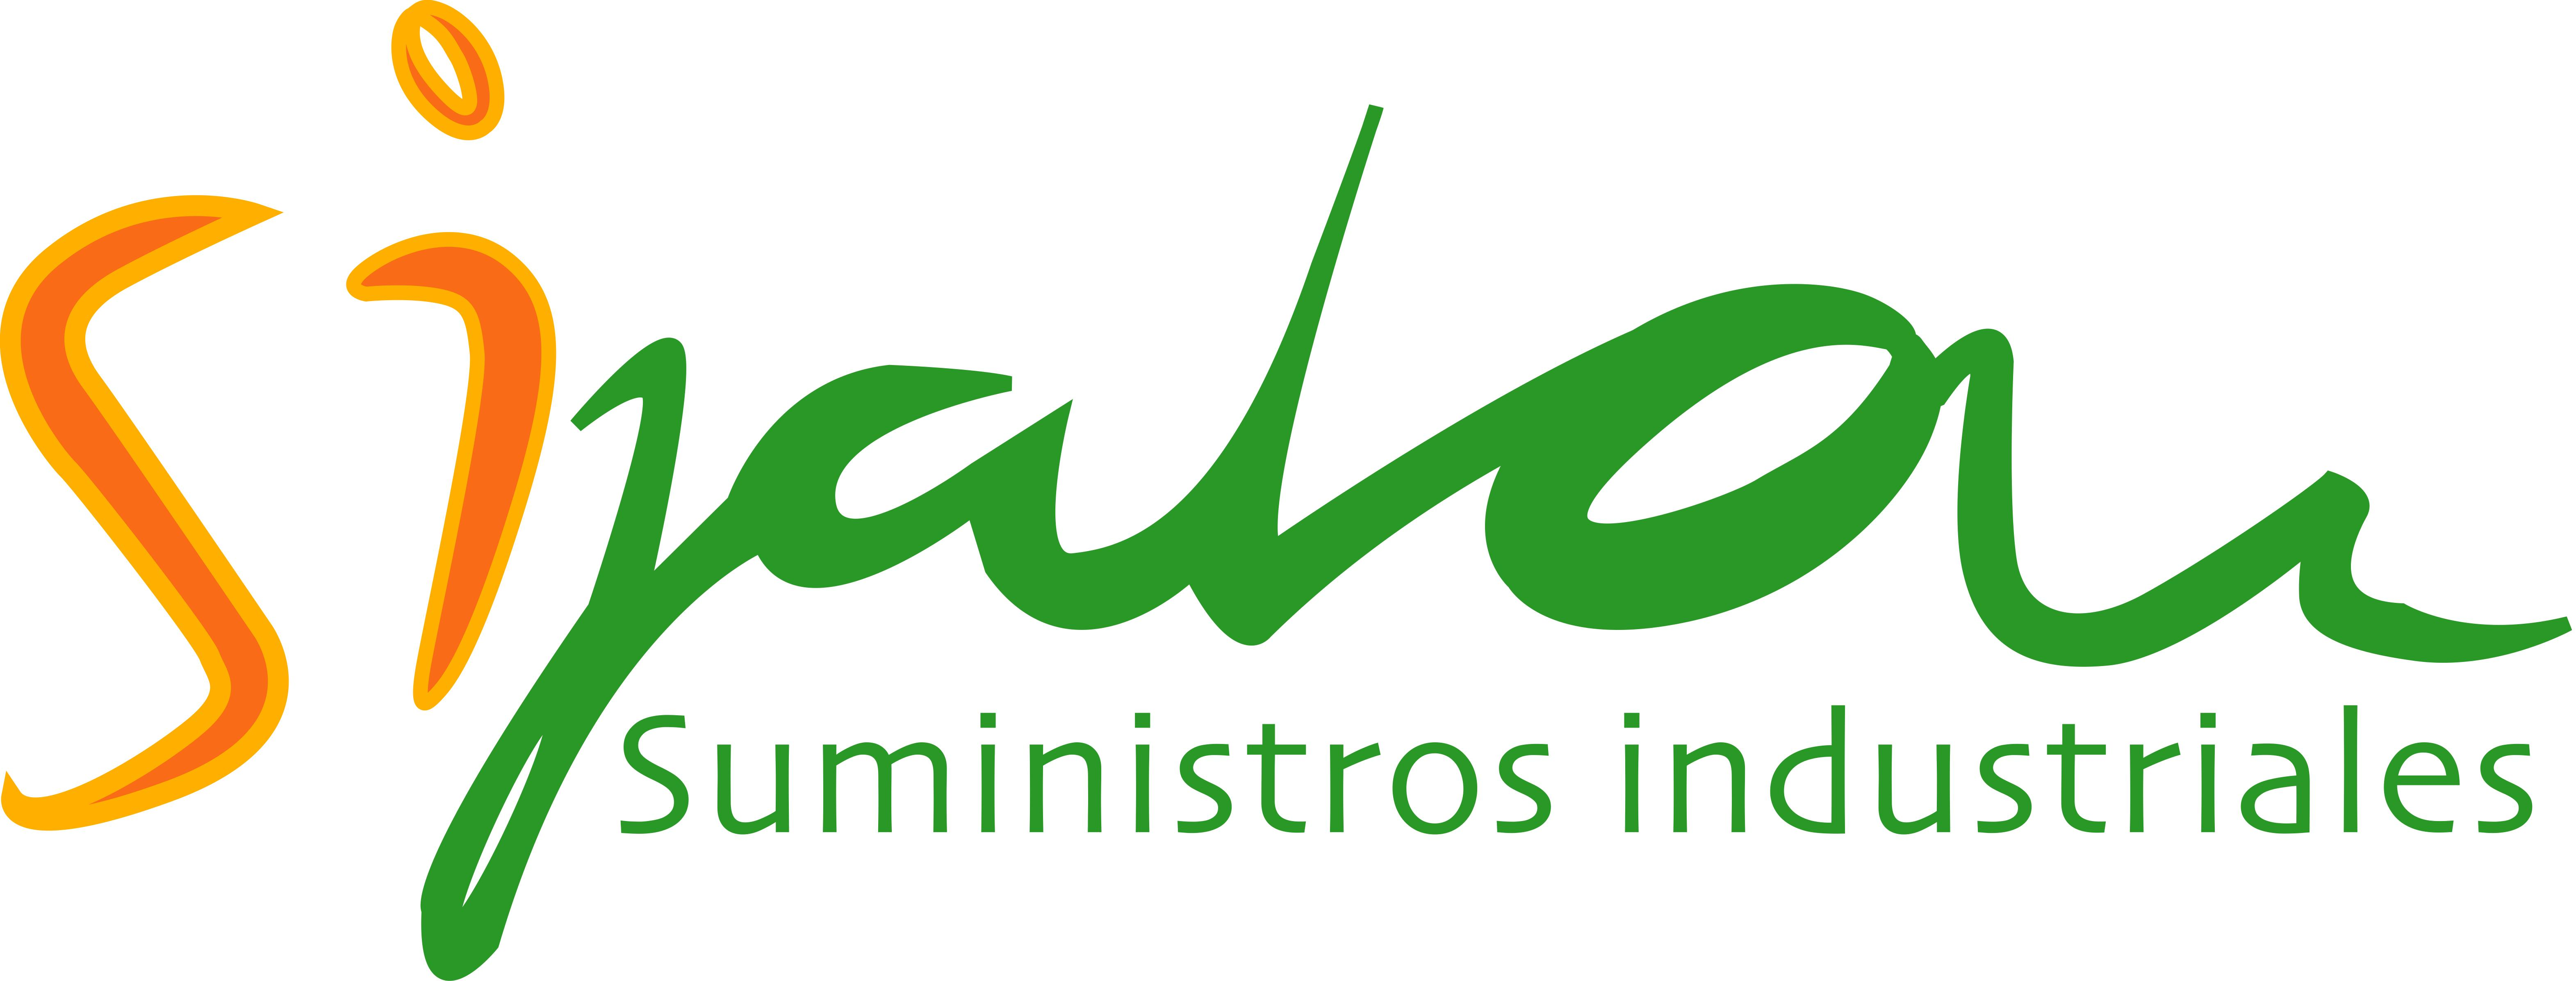 SUMINISTROS INDUSTRIALES JALON S.L.